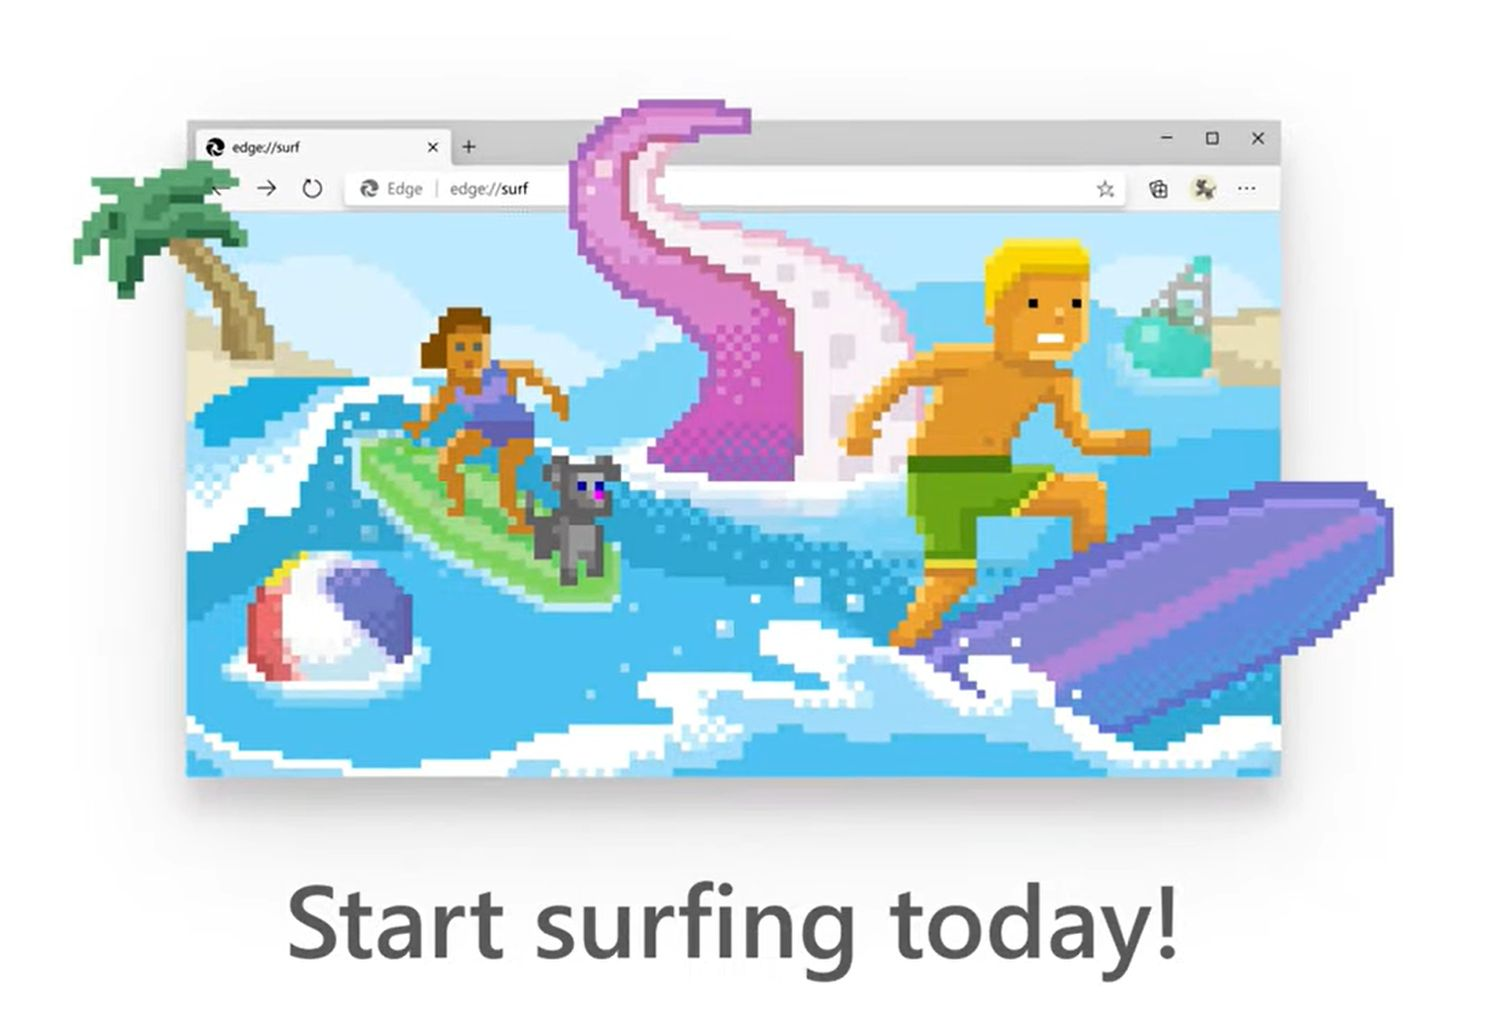 microsoft edge surf game